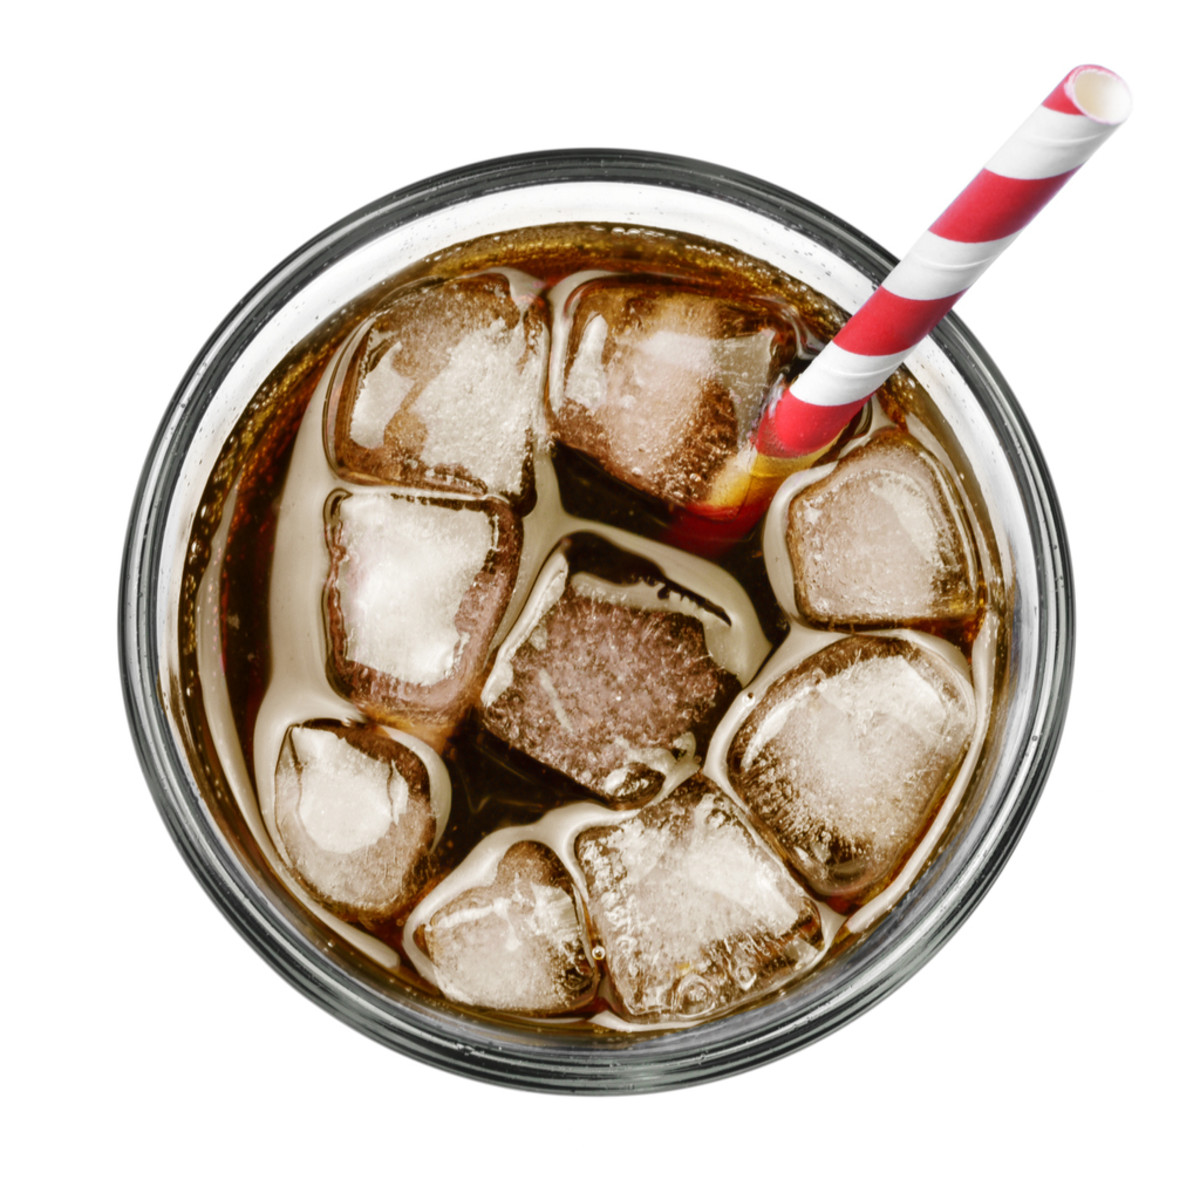 2 Leading Health Organizations Urge Government to Enact Soda Taxes